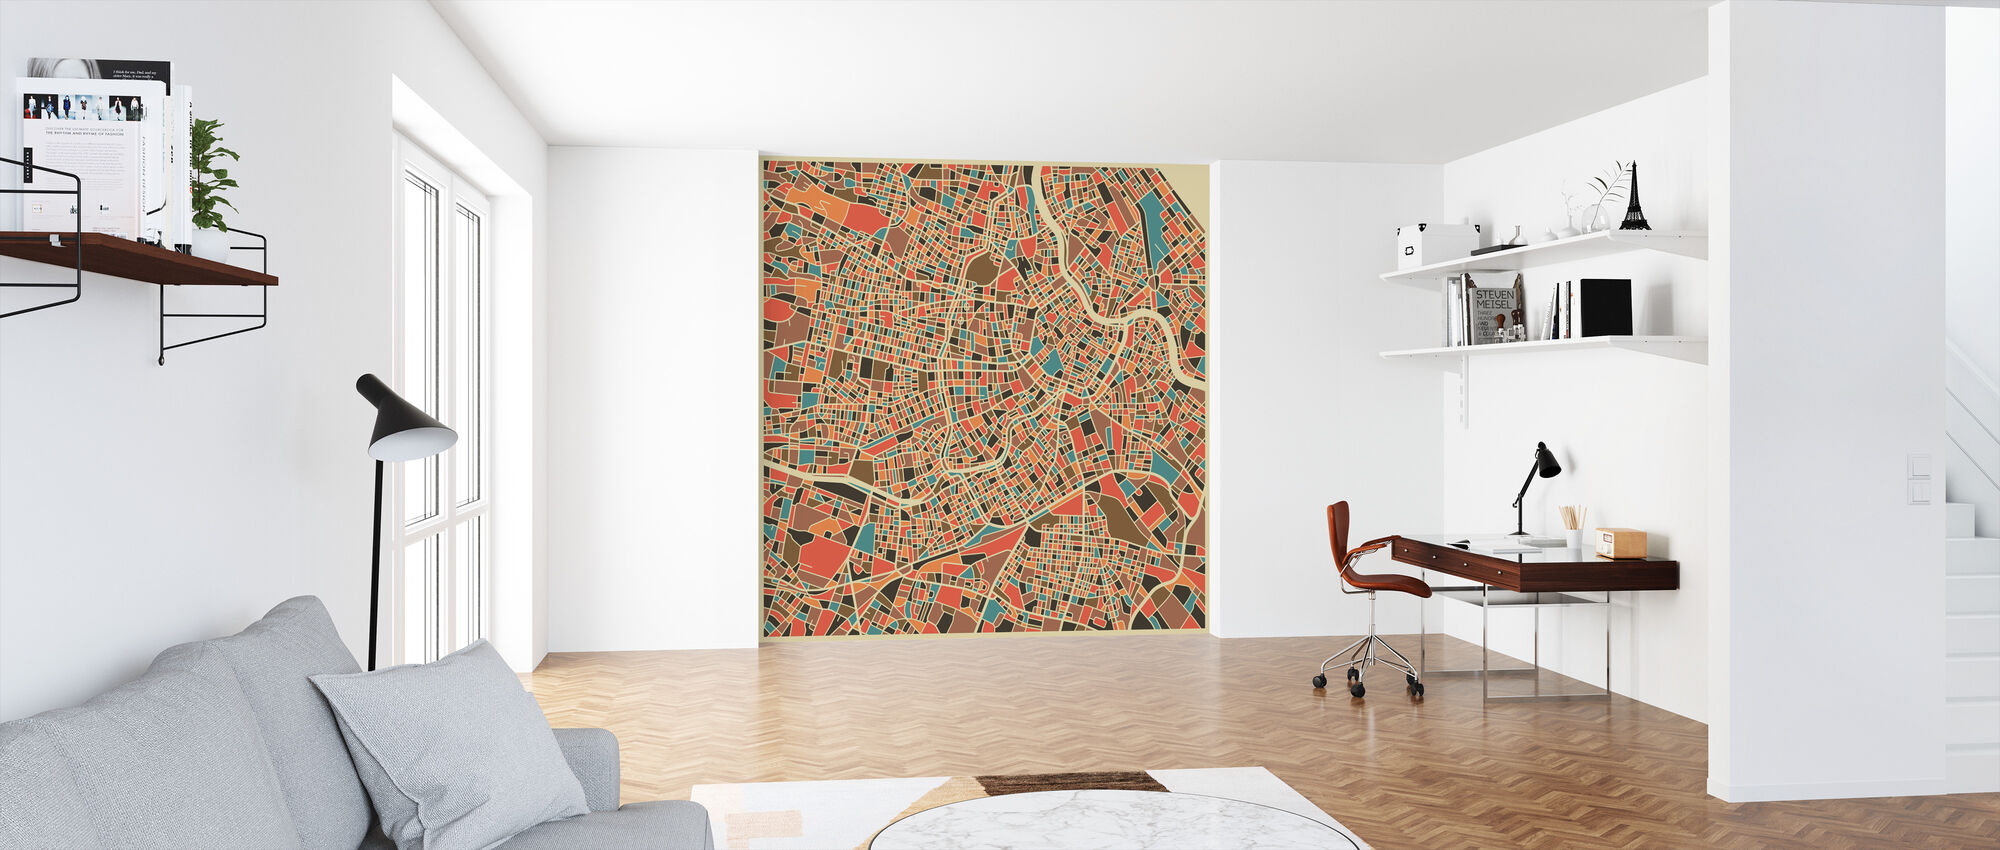 Multicolor Map - Vienna - Wallpaper - Office